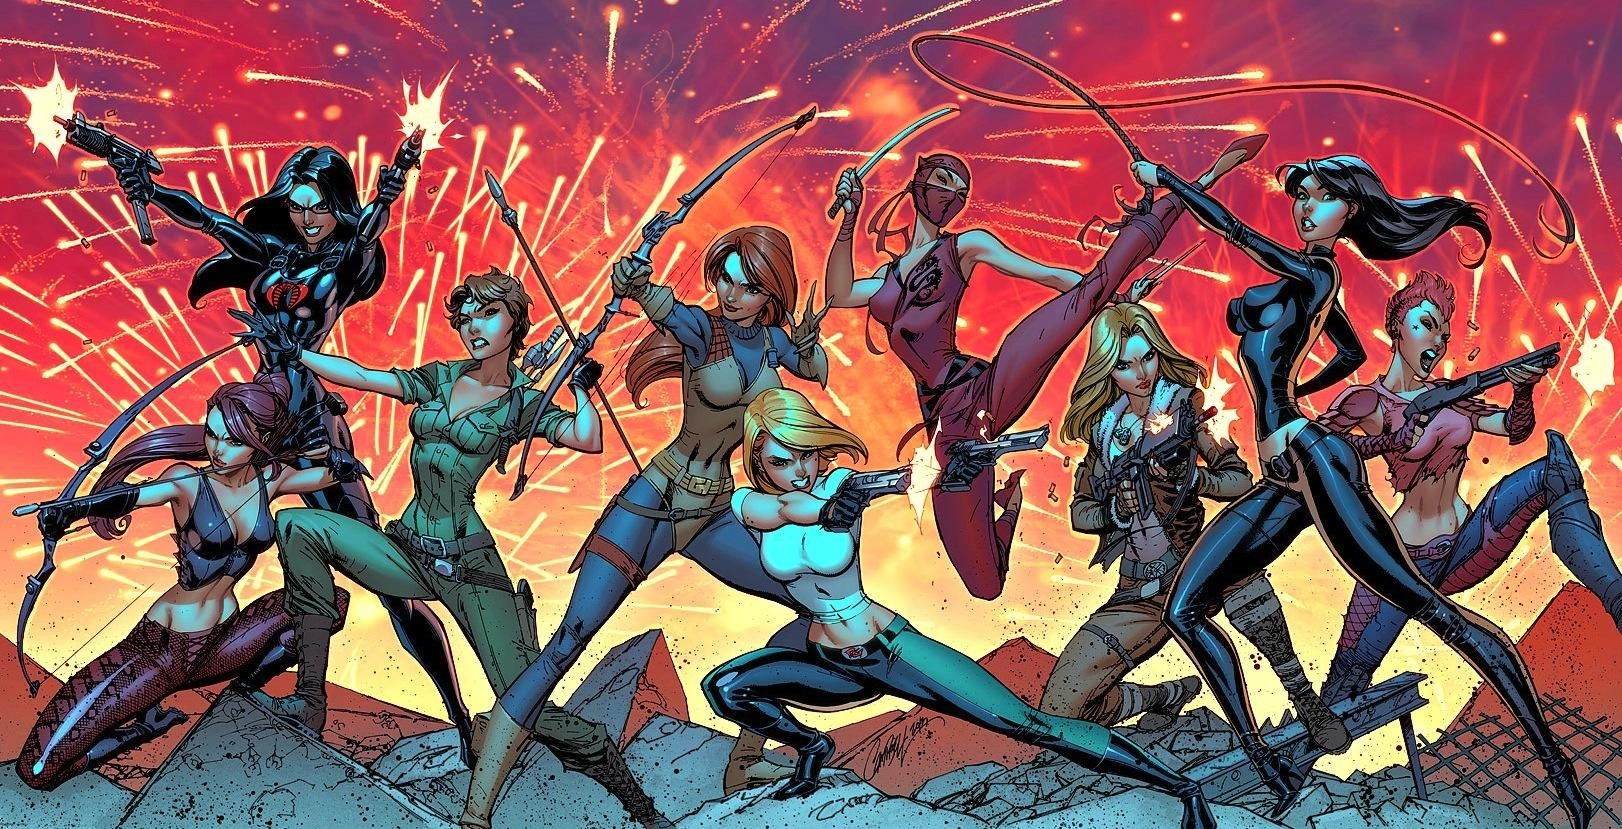 Comics Scarlett Baroness Gi Joe Danger Girl Girls Wallpaper